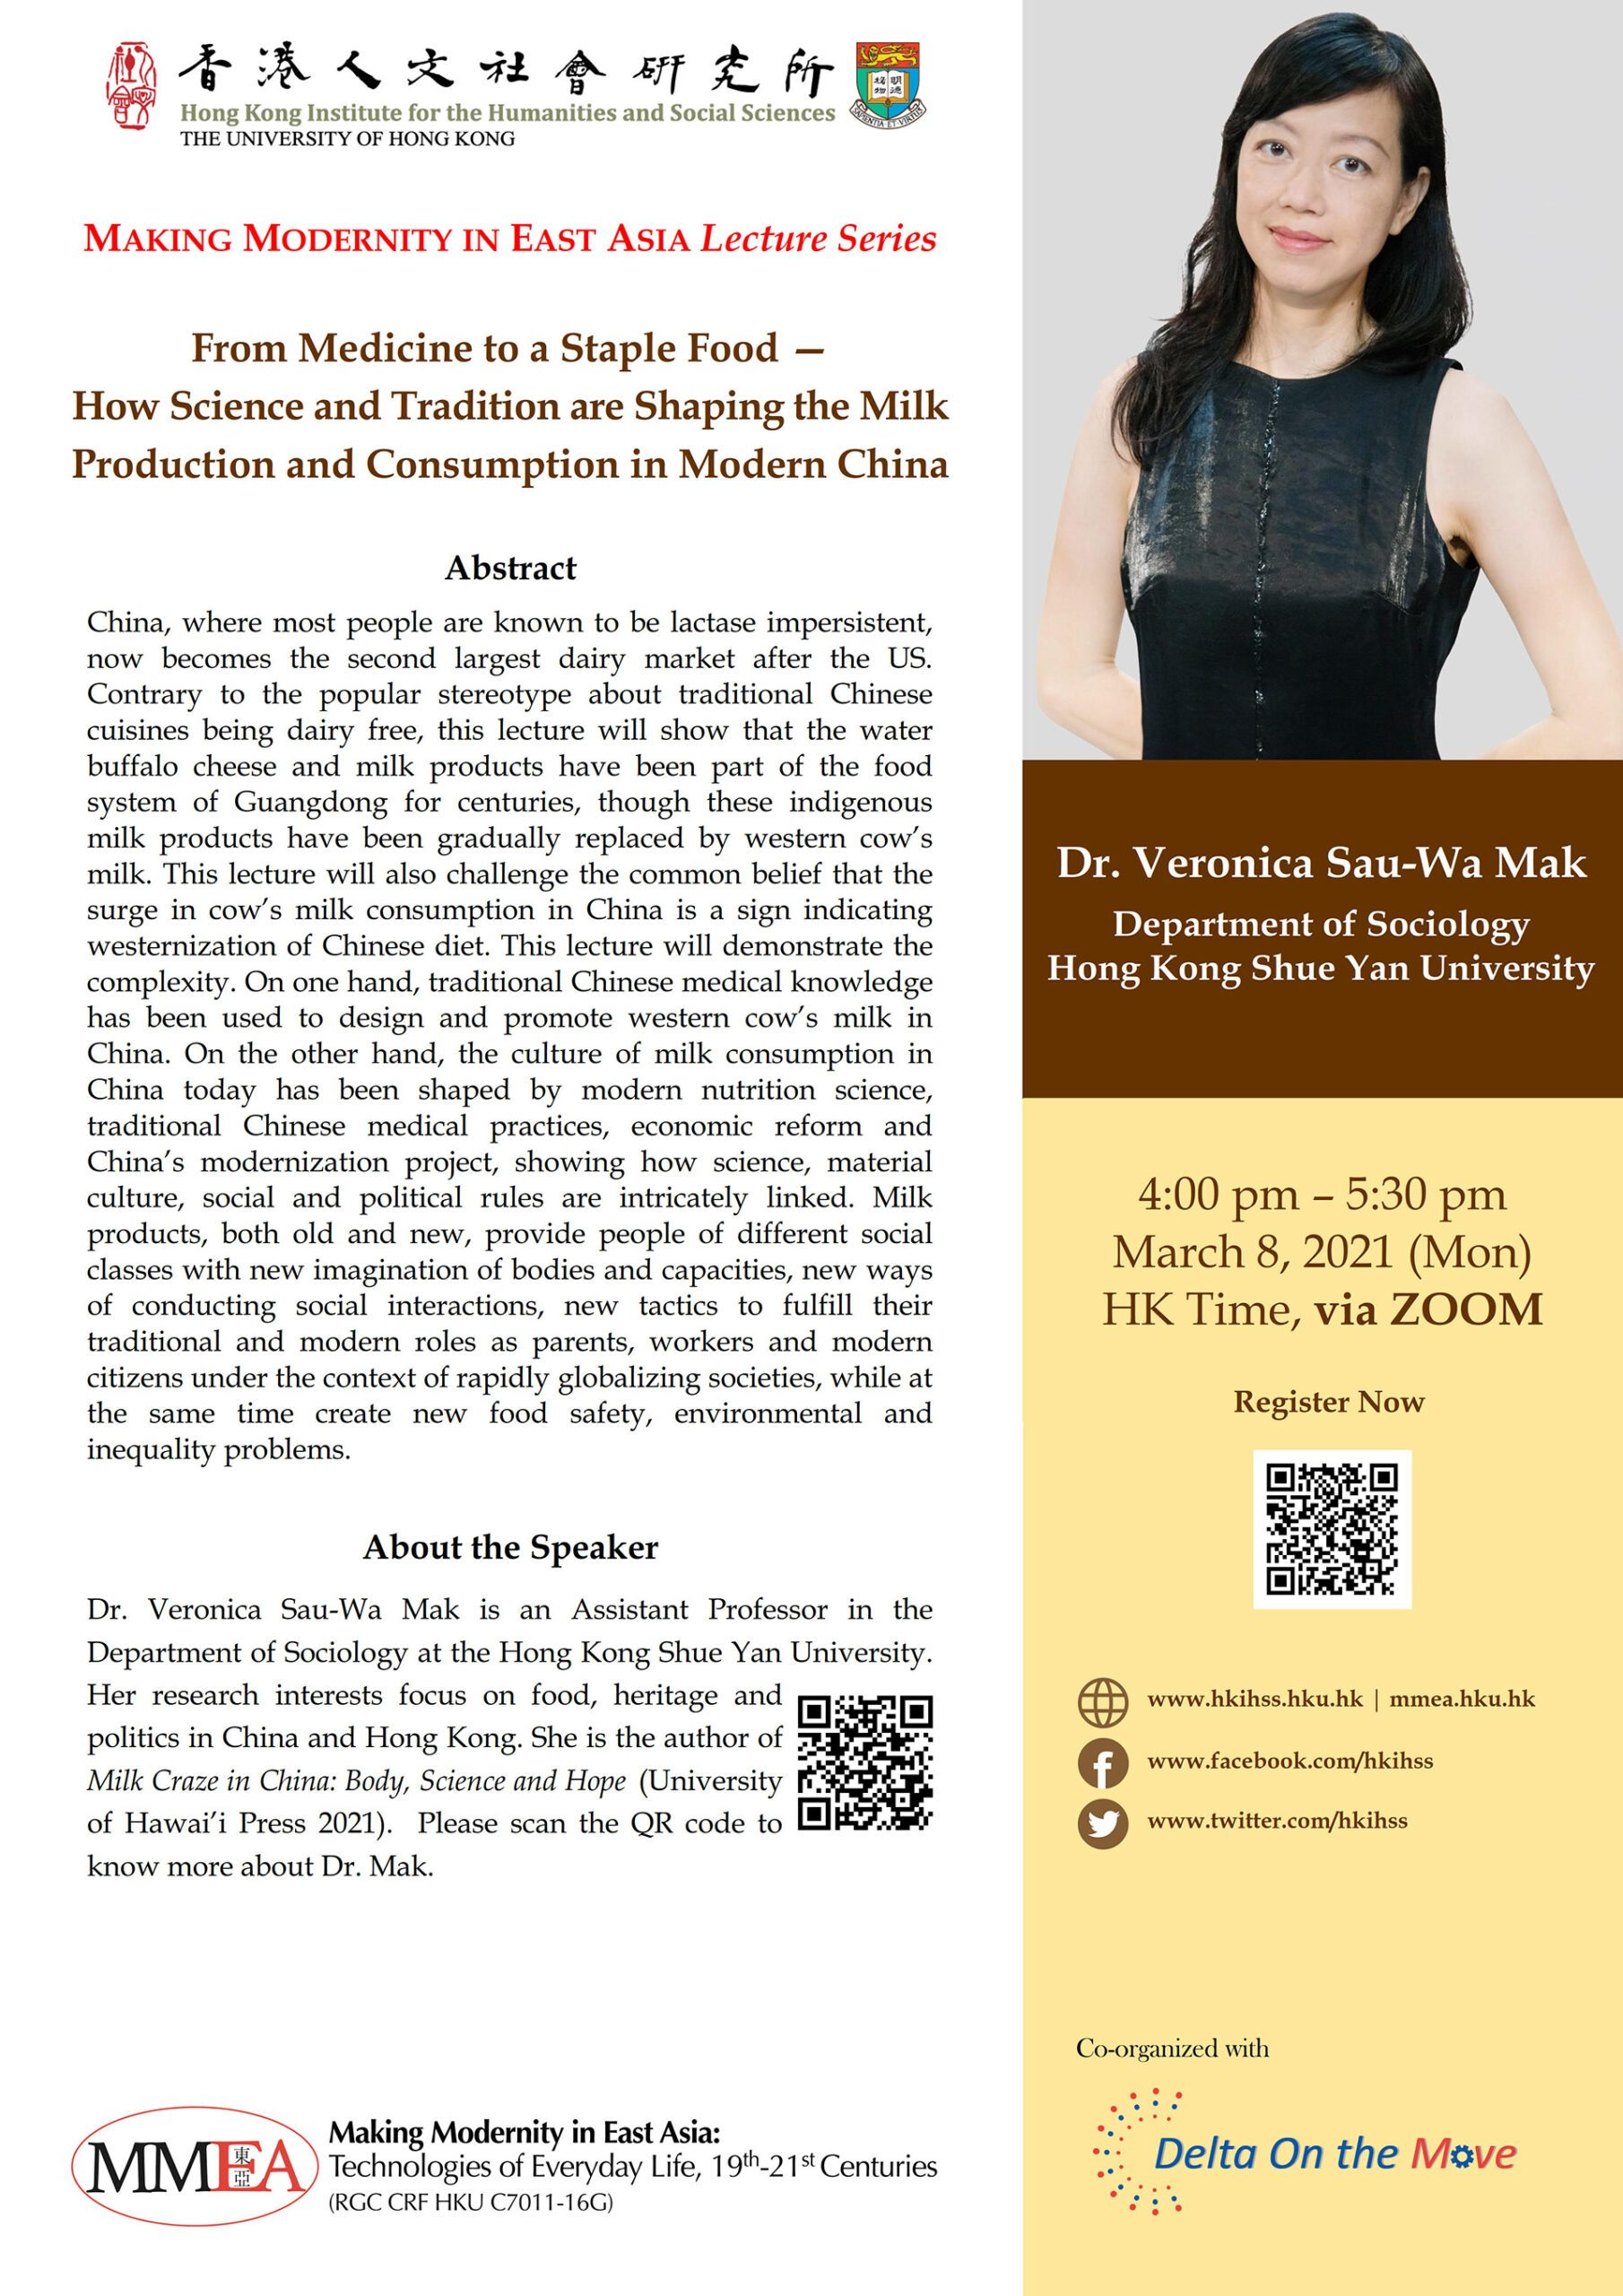 """MMEA Lecture Series """"rom Medicine to a Staple Food — How Science and Tradition are Shaping the Milk Production and Consumption in Modern China"""" by Dr. Veronica Sau-Wa Mak (March 8, 2021)"""